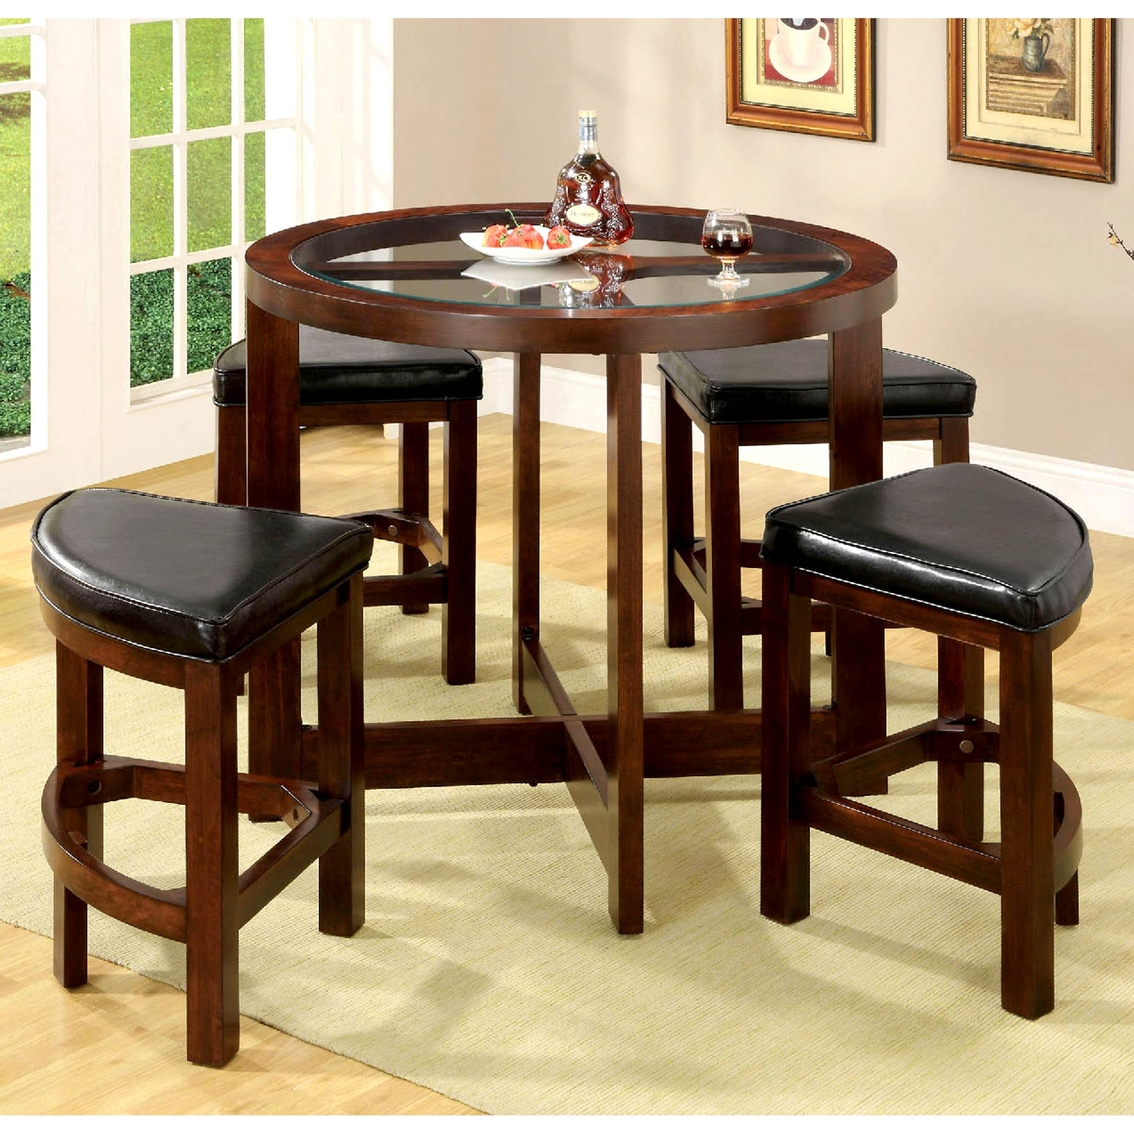 Superb Furniture Of America Crystal Cove 5 Pc Round Counter Height Gmtry Best Dining Table And Chair Ideas Images Gmtryco